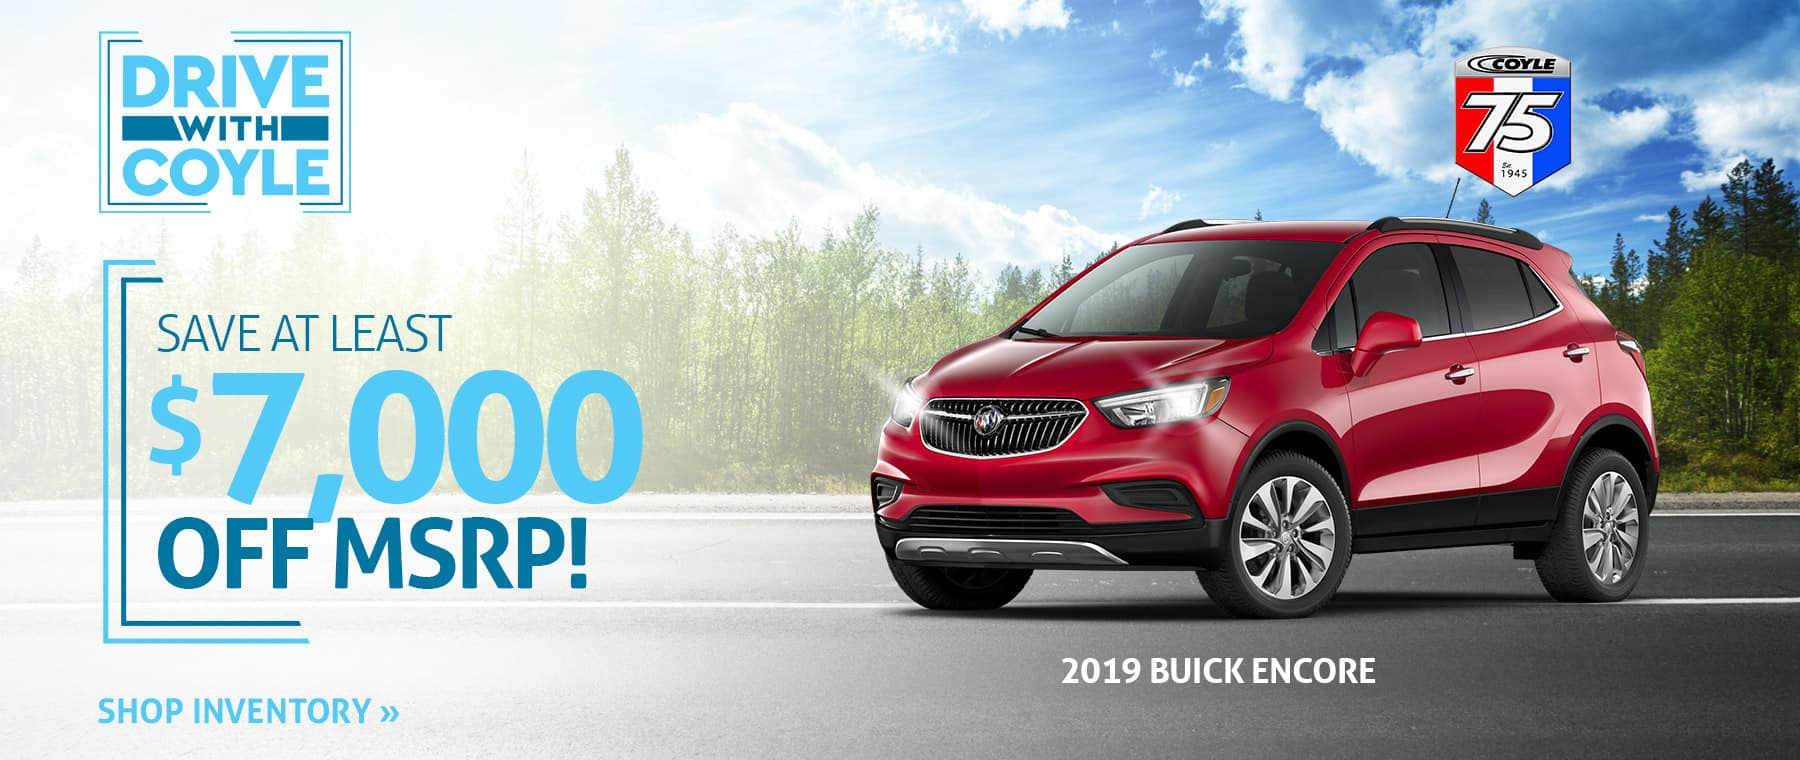 Rebate Special on a New Buick Encore near Watson, Indiana